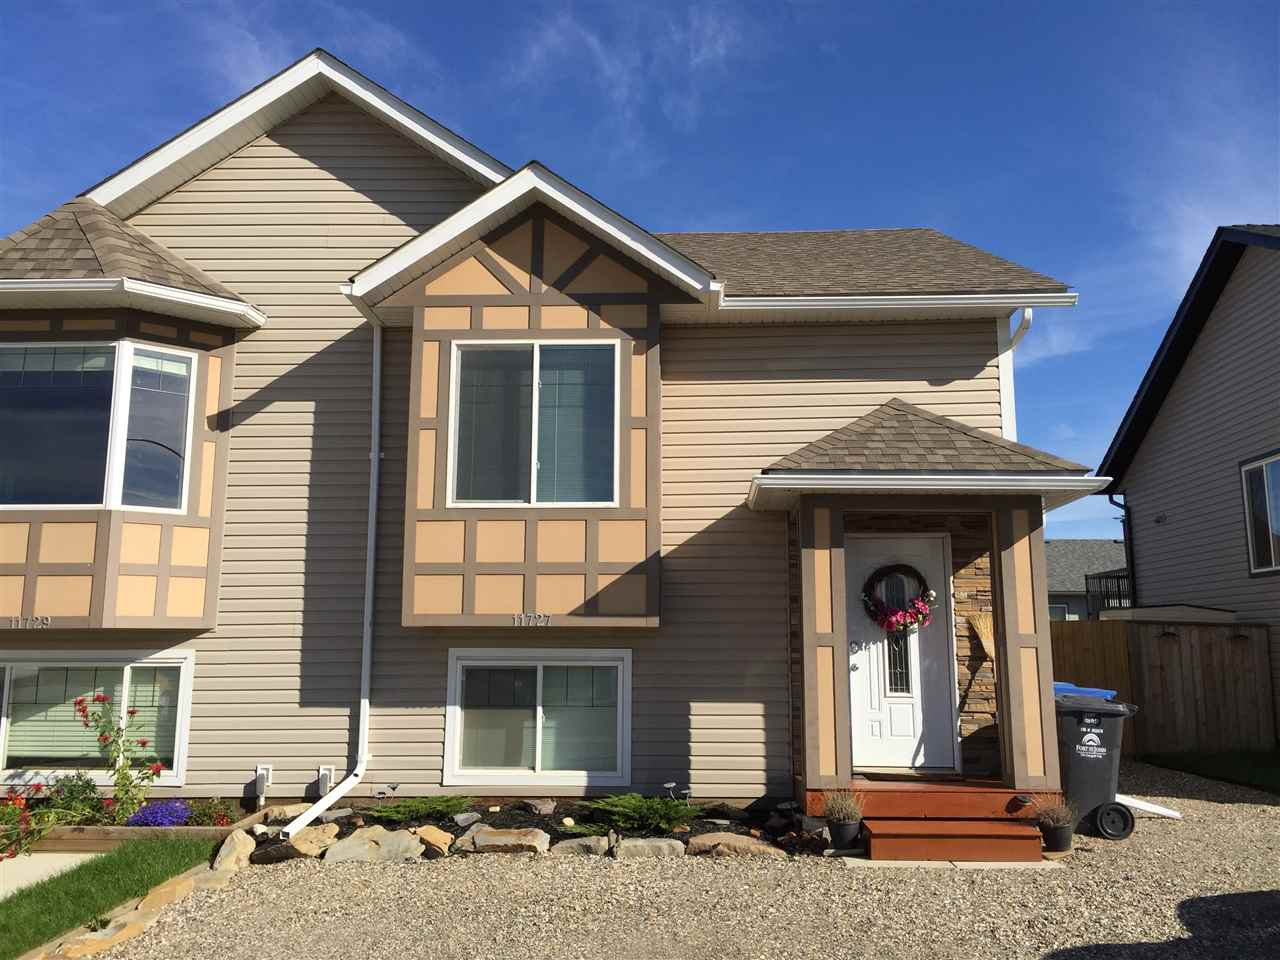 Main Photo: 11727 98A Street in Fort St. John: Fort St. John - City NE House 1/2 Duplex for sale (Fort St. John (Zone 60))  : MLS® # R2110876